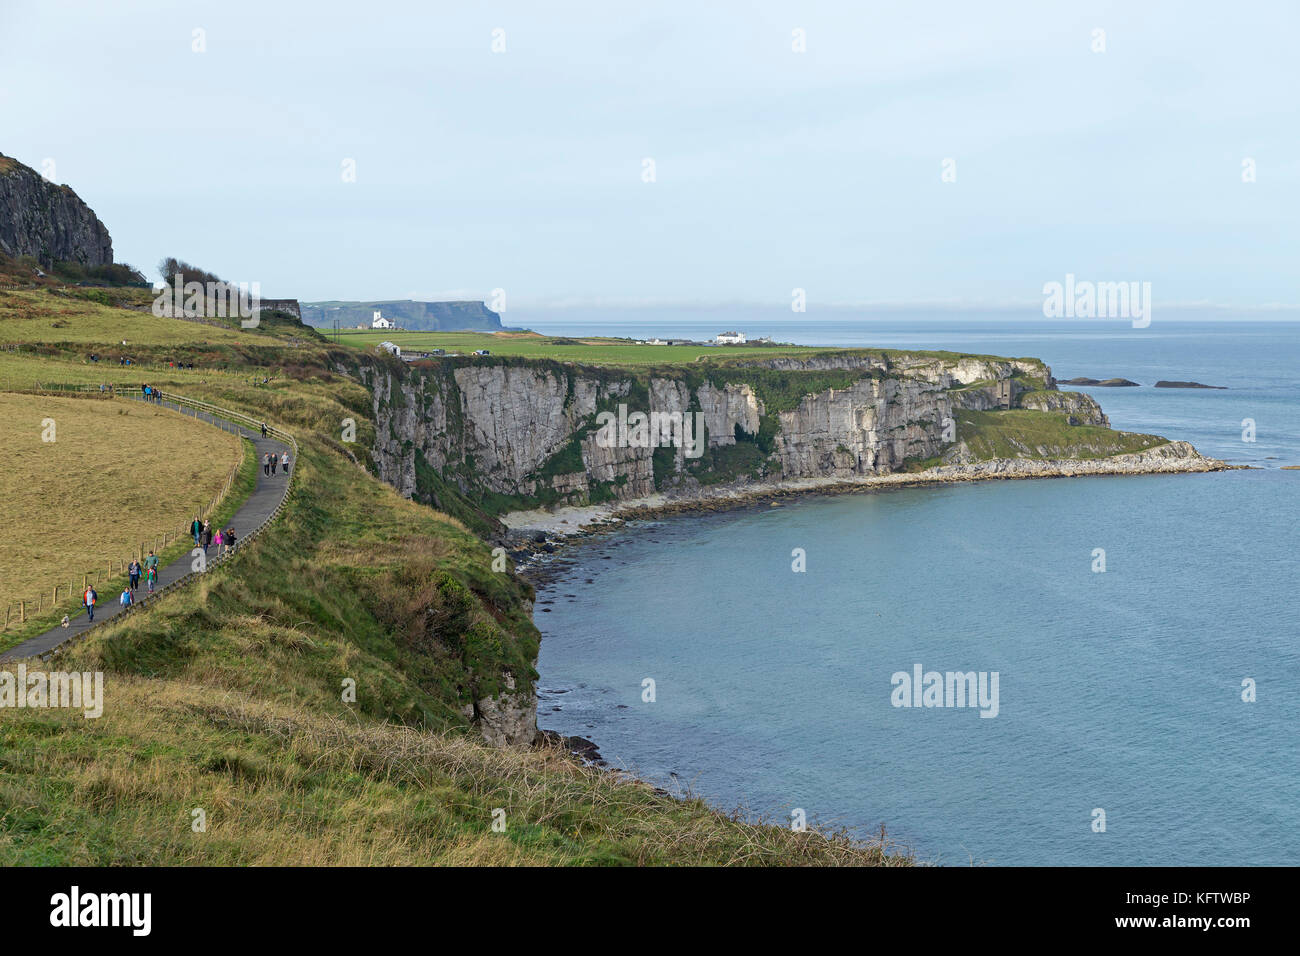 white cliffs on the way to Carrick-a-Rede Rope Bridge, Ballintoy, Co. Antrim, Northern Ireland - Stock Image